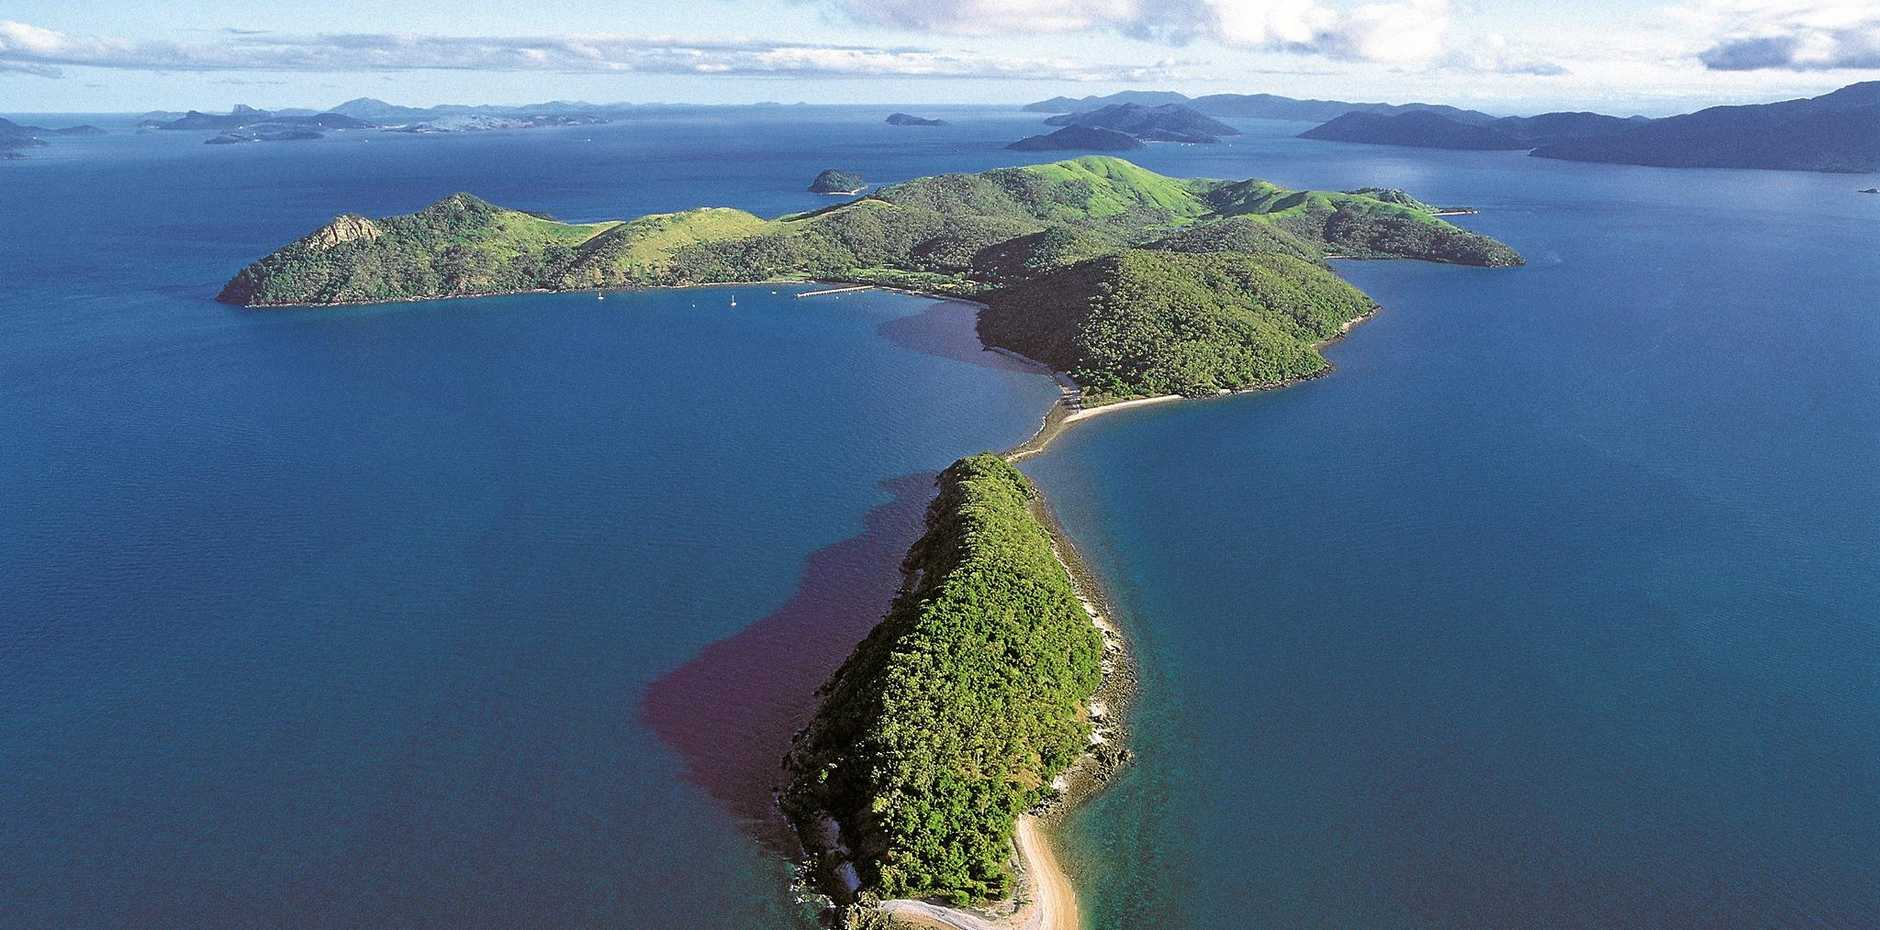 South Molle Island is a picturesque, hilly island surrounded by fringing reefs.